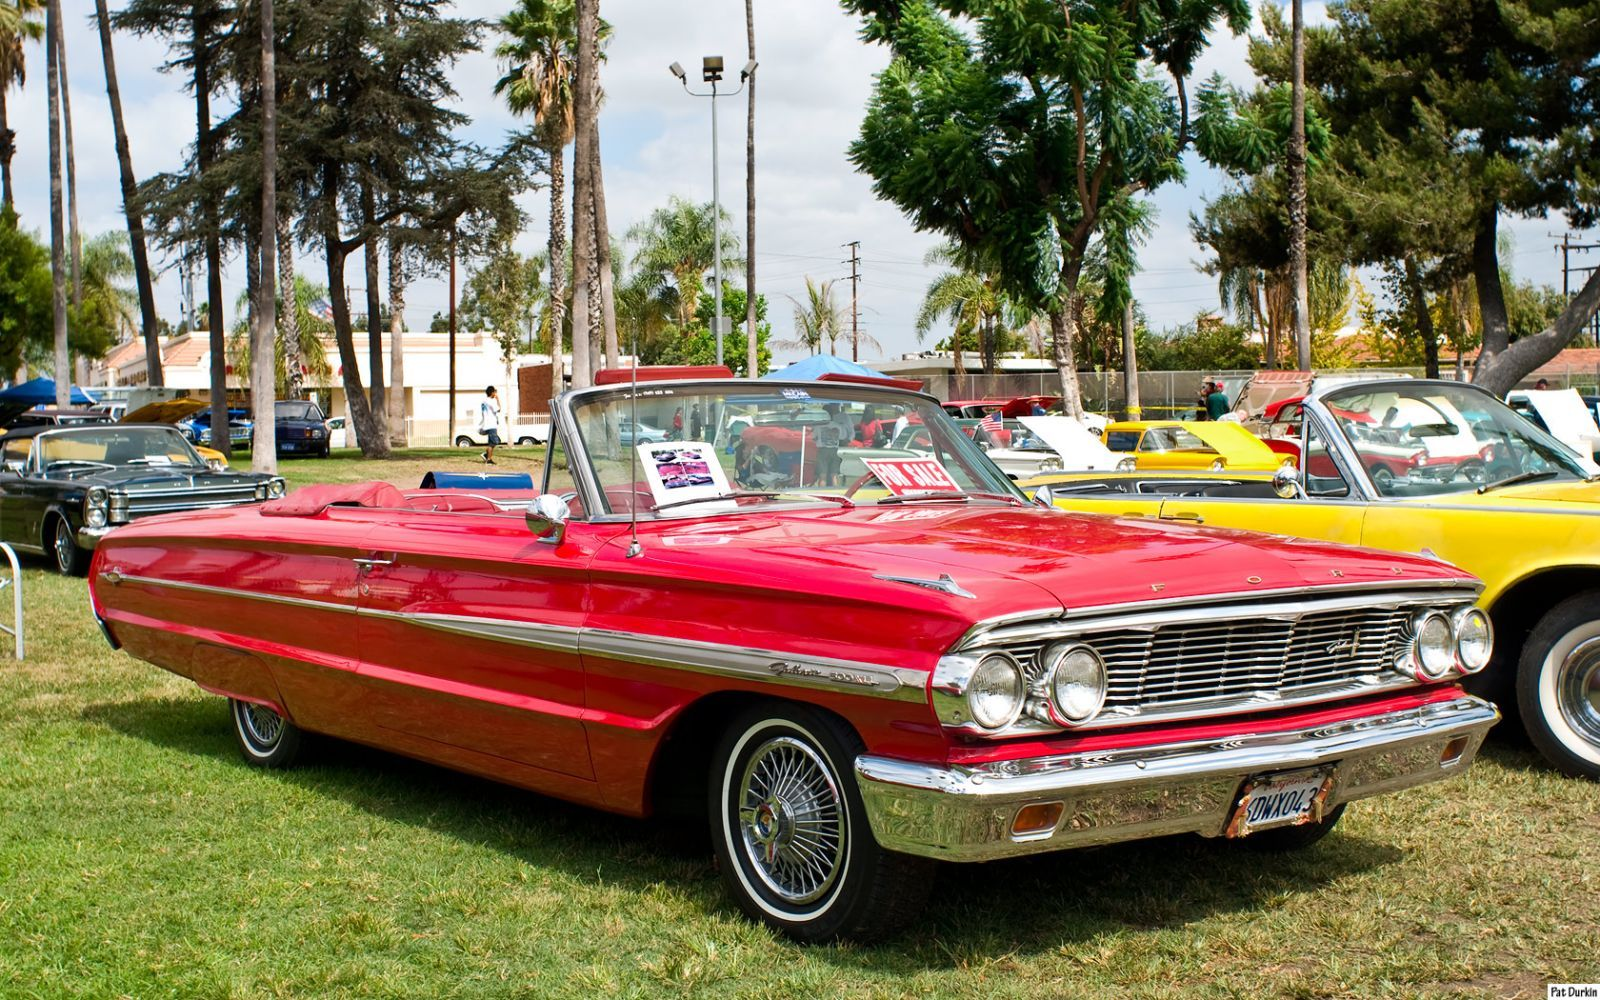 1964 Ford Galaxie 500 Xl Convertible My Mom And Dad Had One Like